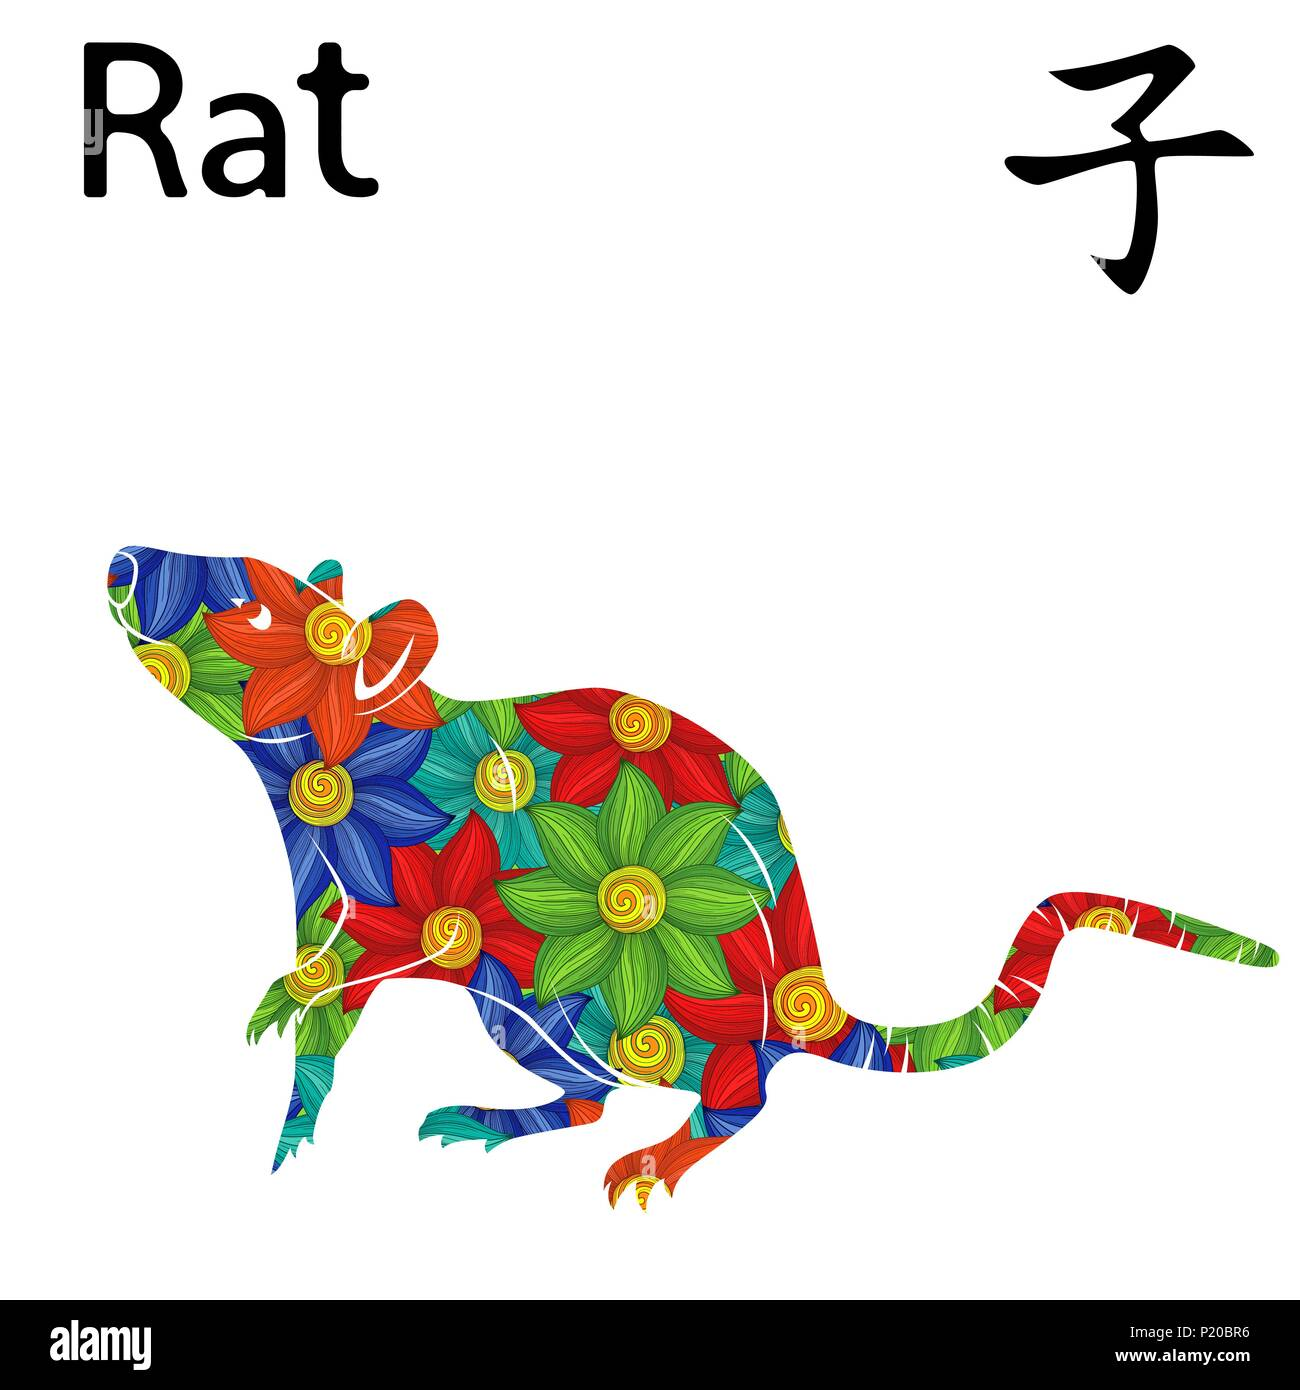 Chinese Zodiac Sign Rat Symbol Of New Year On The Eastern Calendar